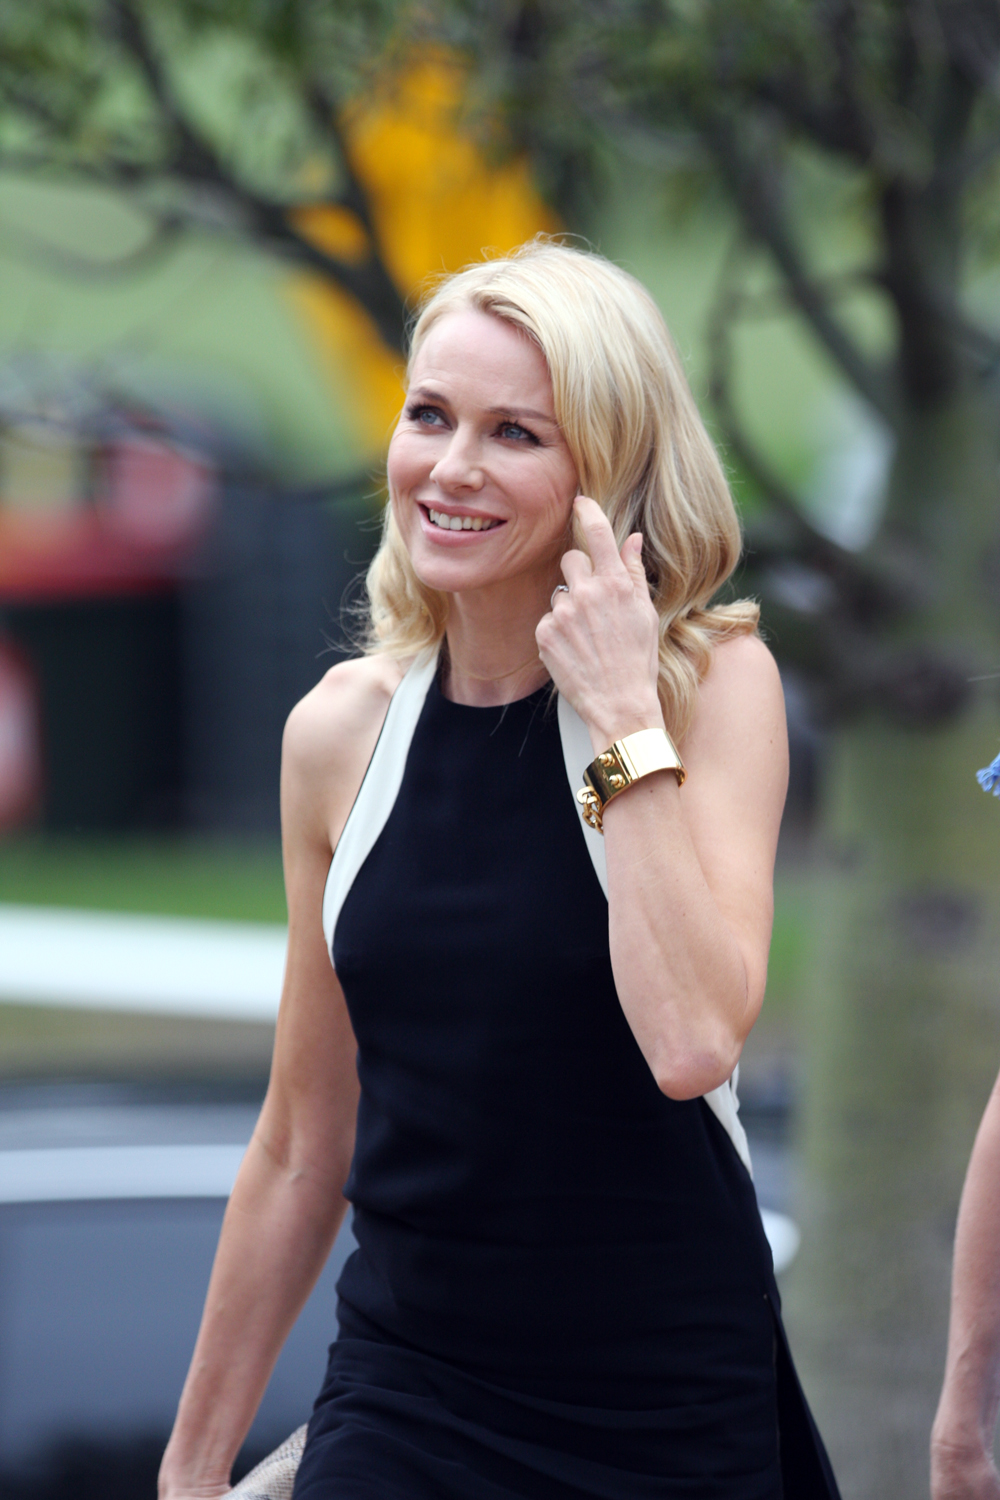 21 grams naomi watts amazing nipples - 5 7